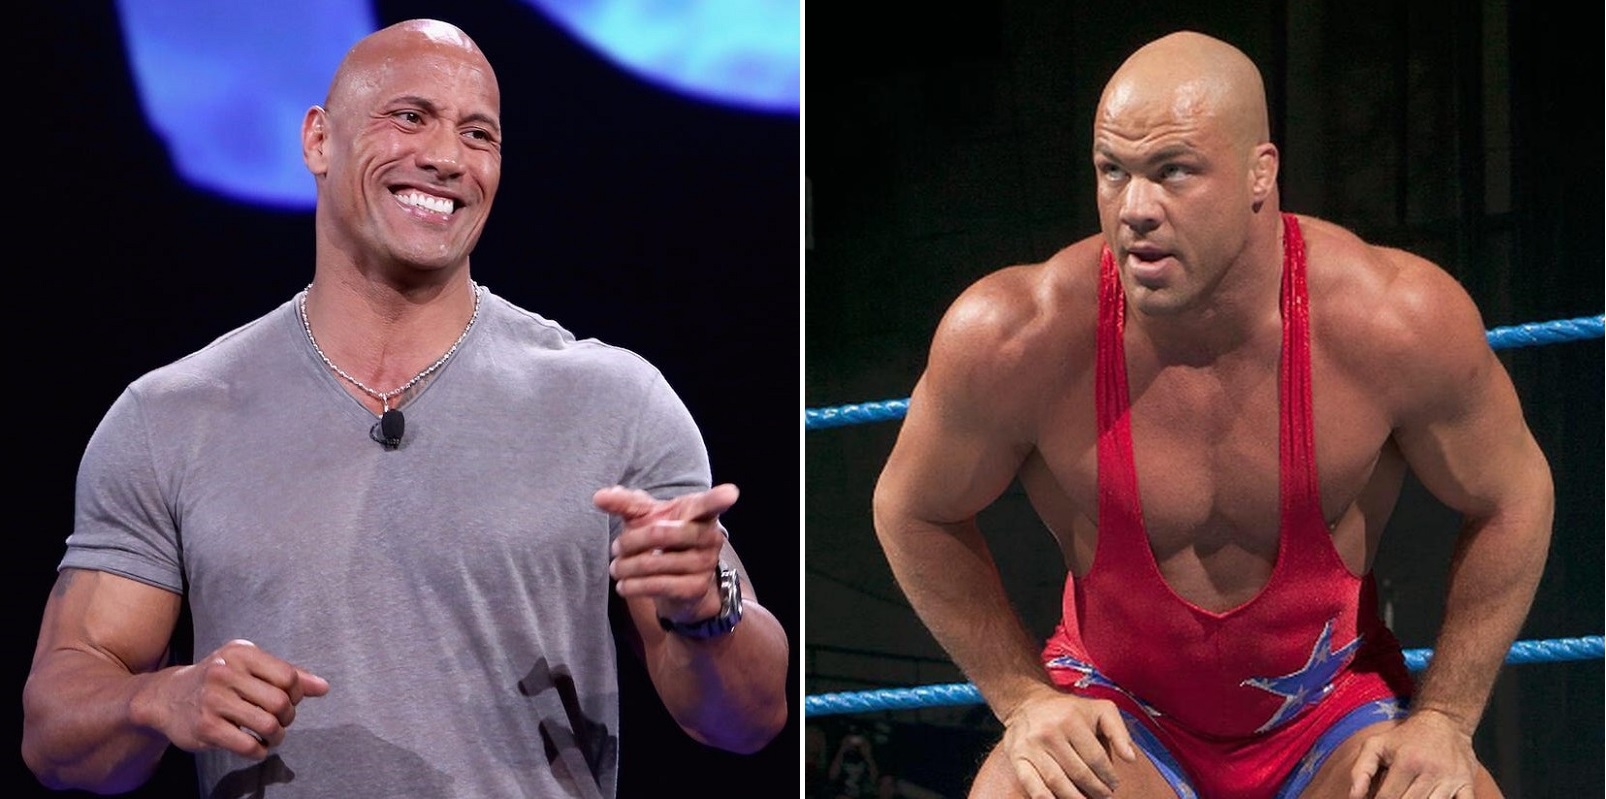 The Rock reacts to hysterical house show with Kurt Angle - THE SPORTS ROOM